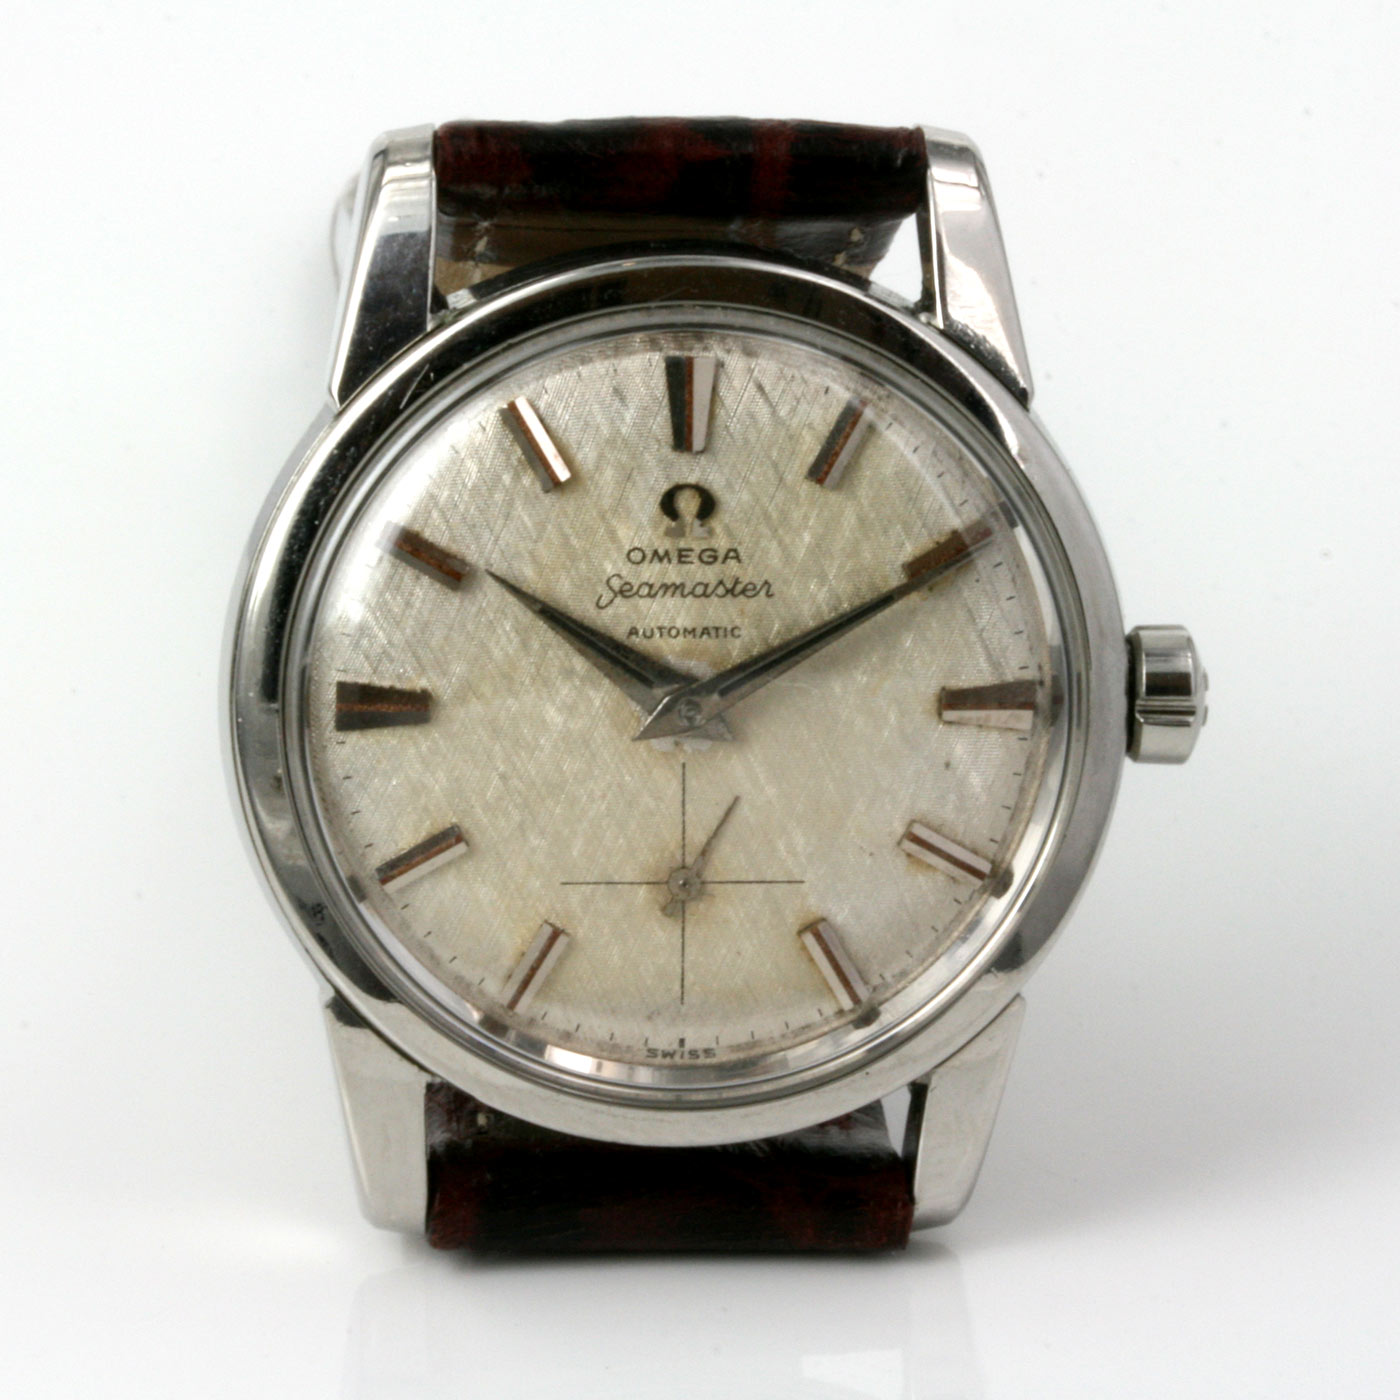 1aeb8b4c8e101 Buy Vintage Omega Seamaster with the automatic calibre 490 Sold ...